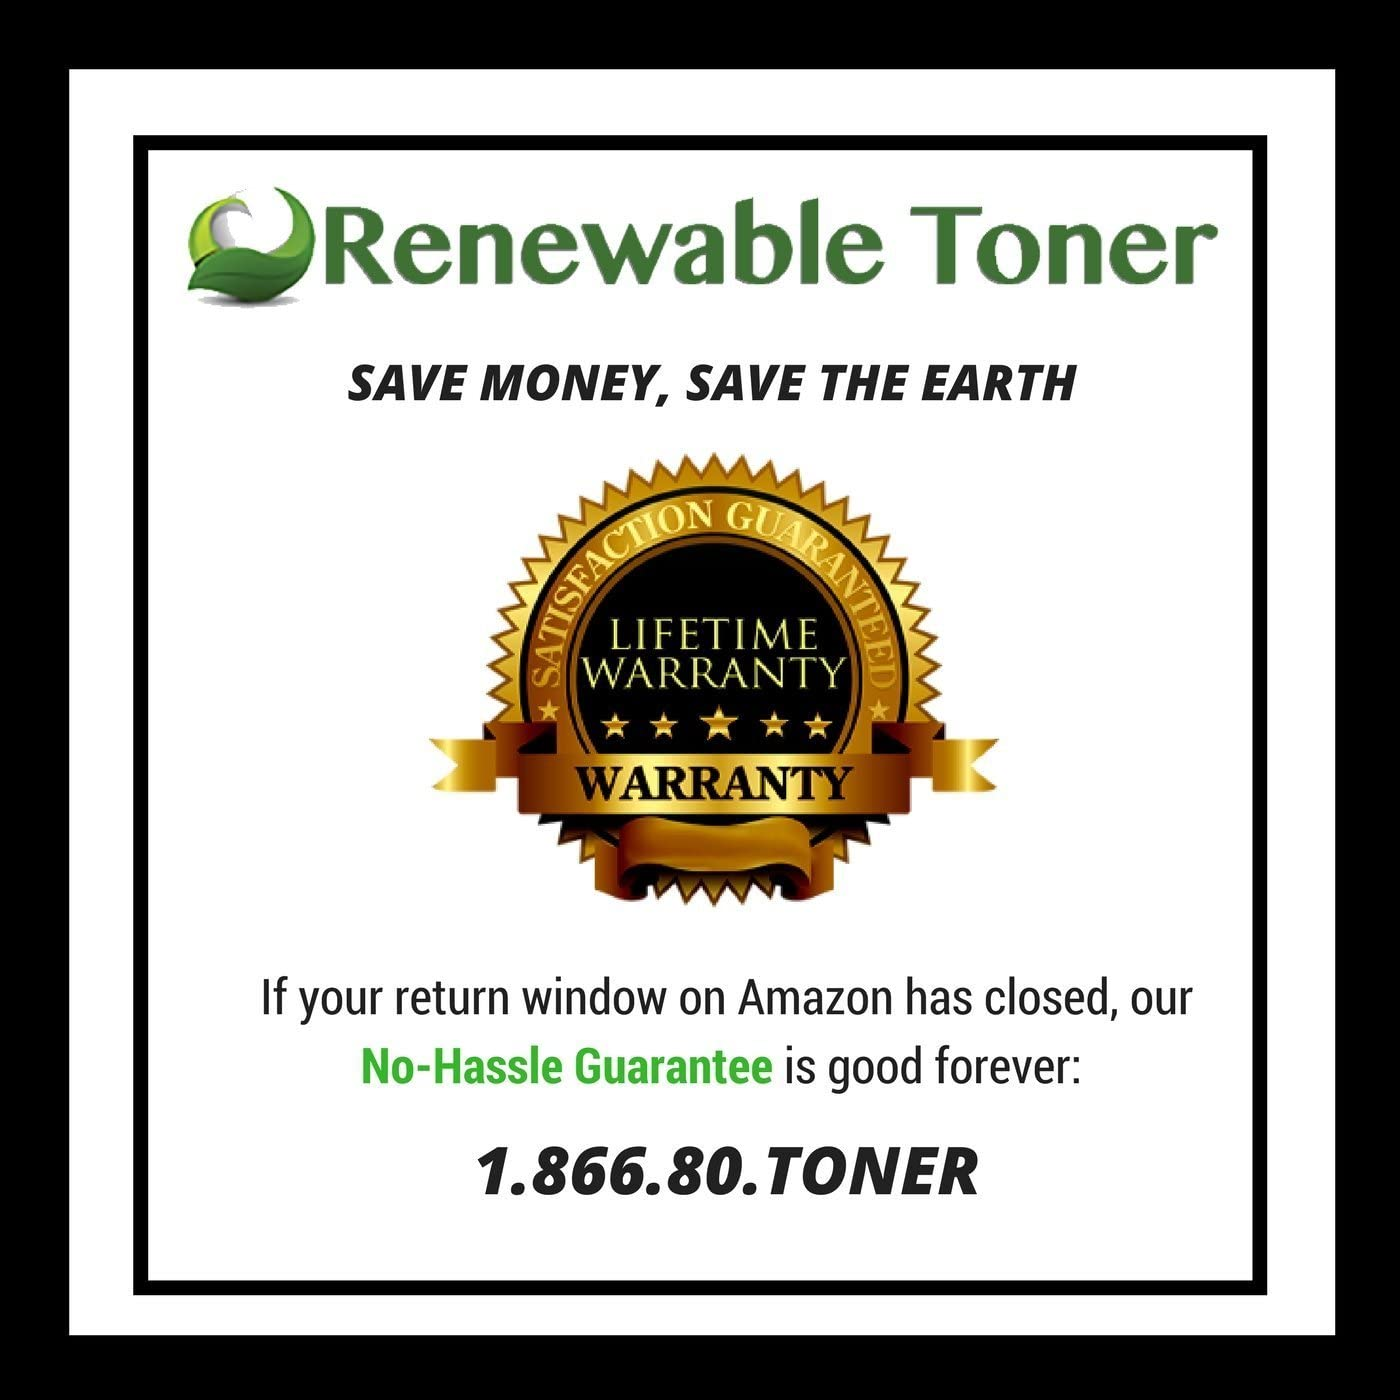 Renewable Toner Compatible MICR Toner Cartridge Replacement for HP 55A CE255A for HP Laserjet Enterprise P3010 P3015 P3016 Printers 2-Pack